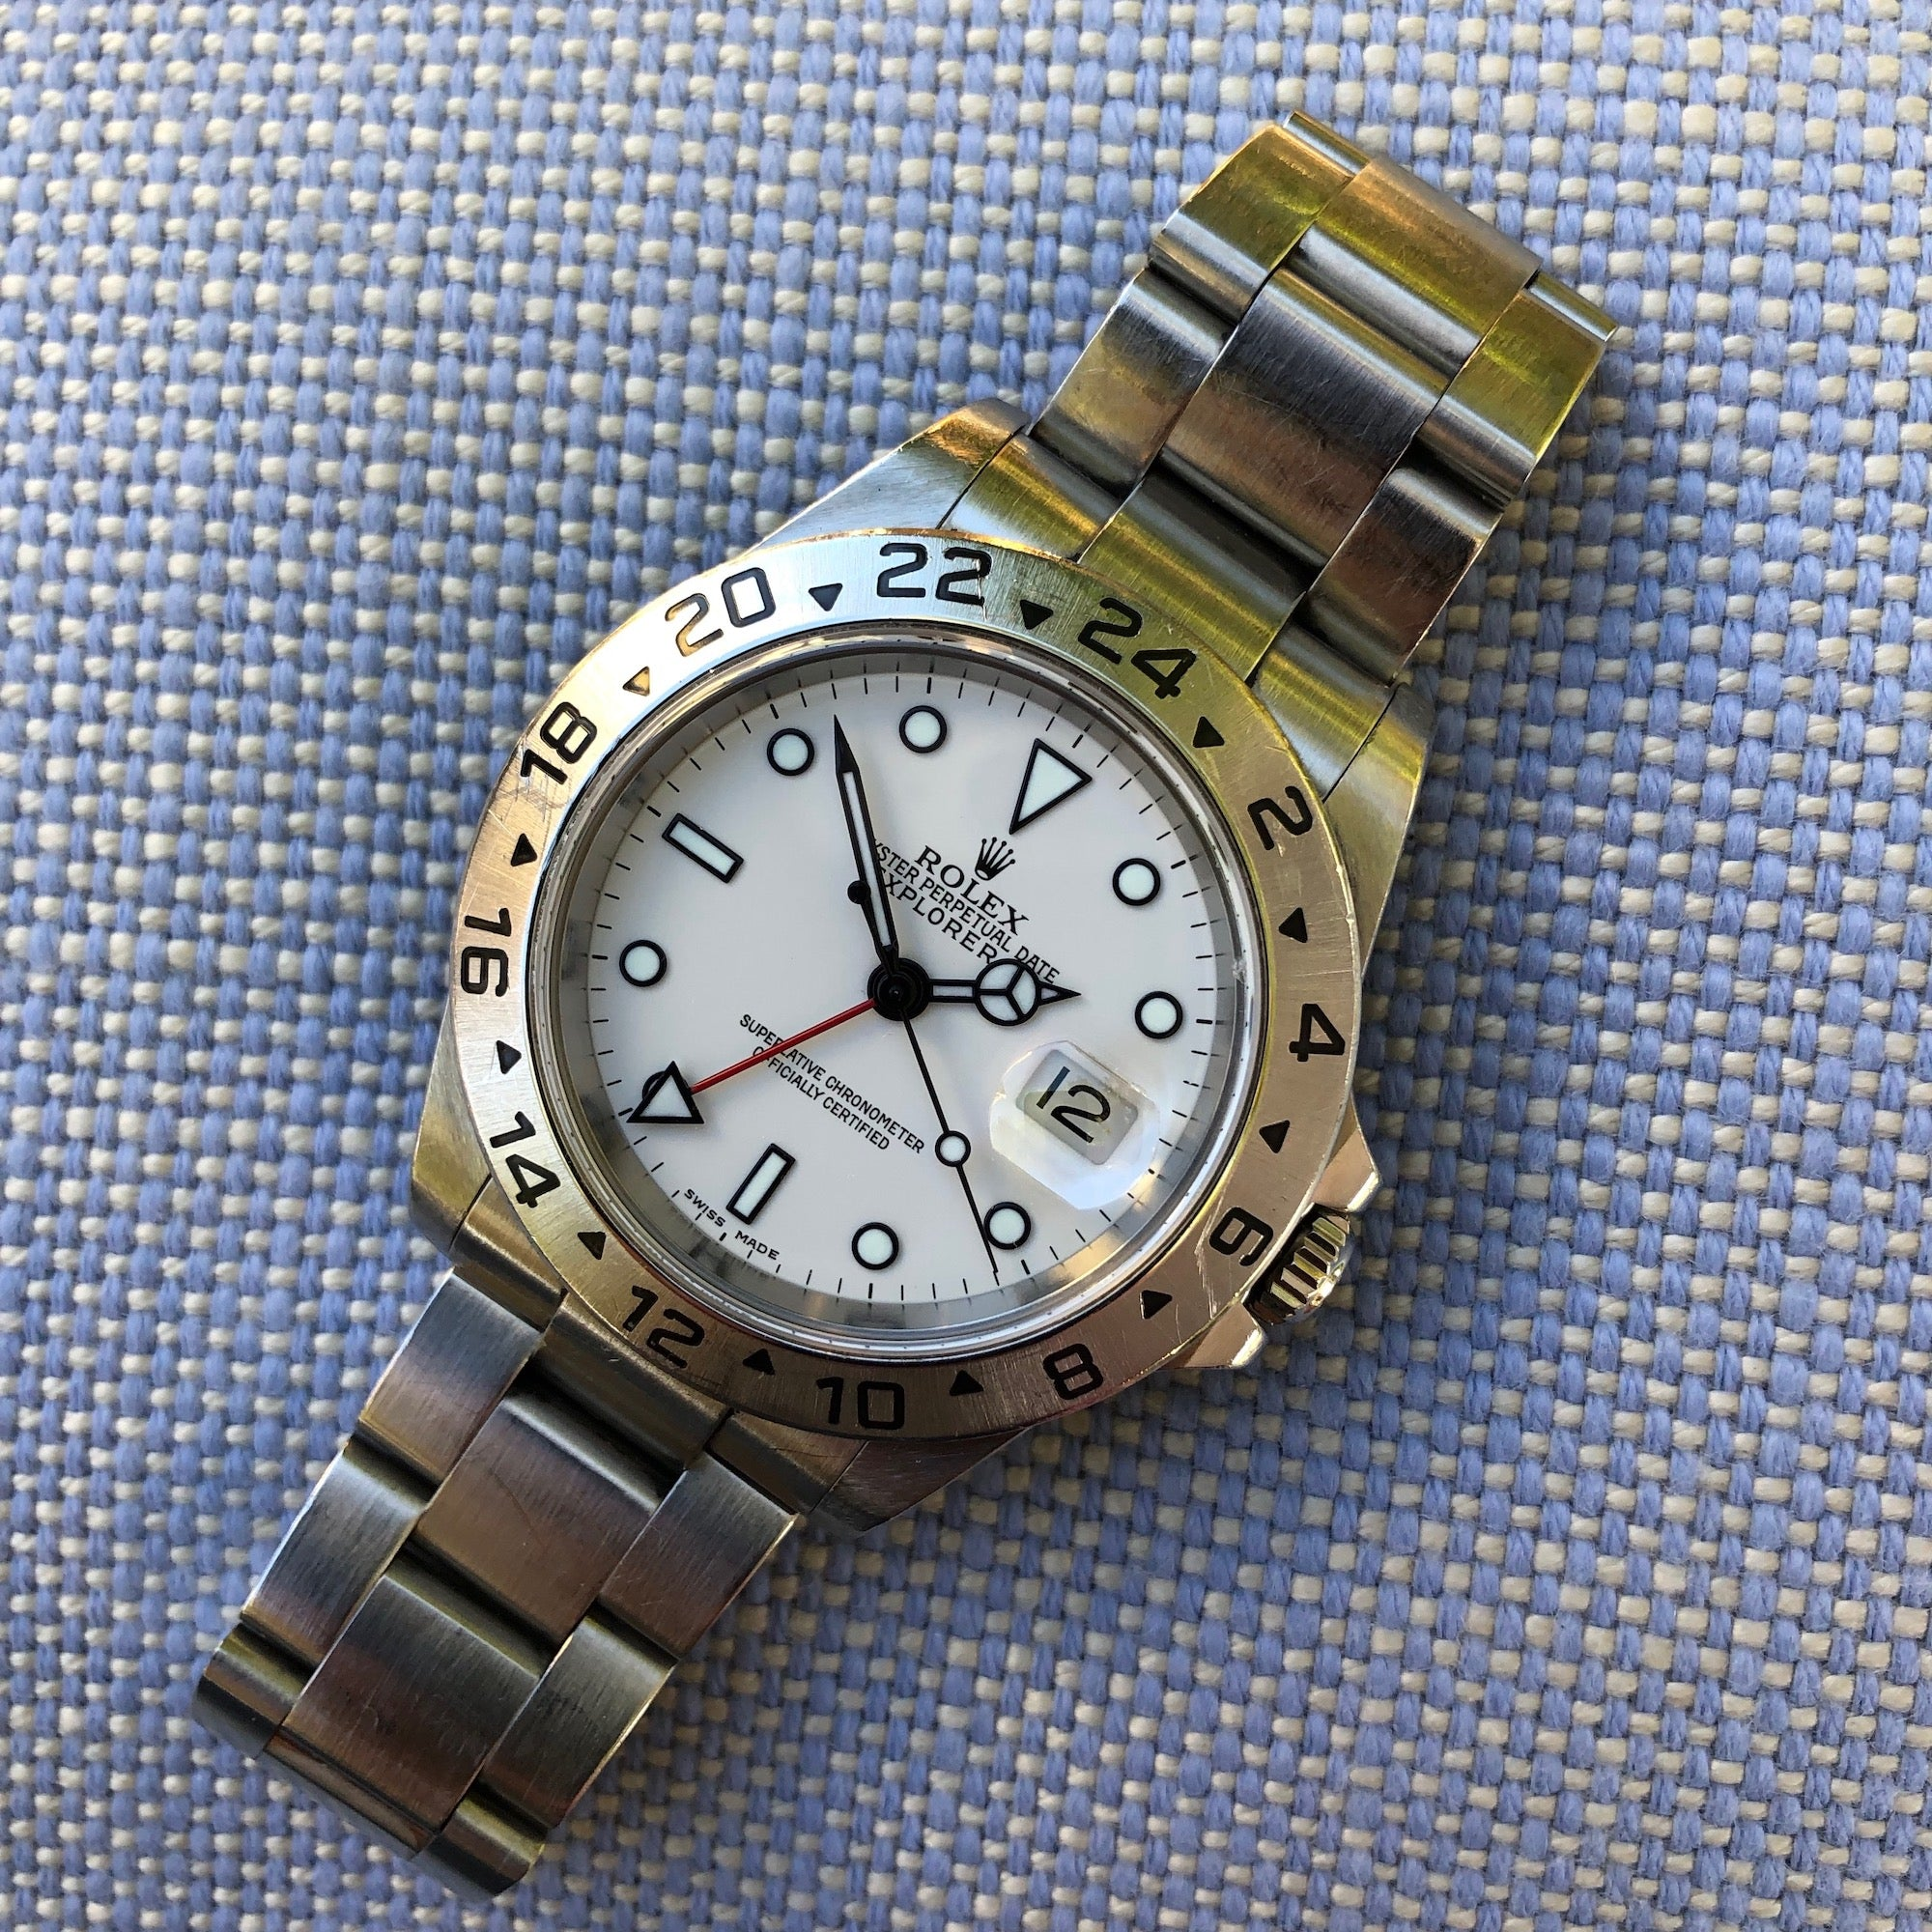 Rolex Explorer II 16570 White Stainless Steel GMT Oyster D Serial Wristwatch Circa 2005 - Hashtag Watch Company